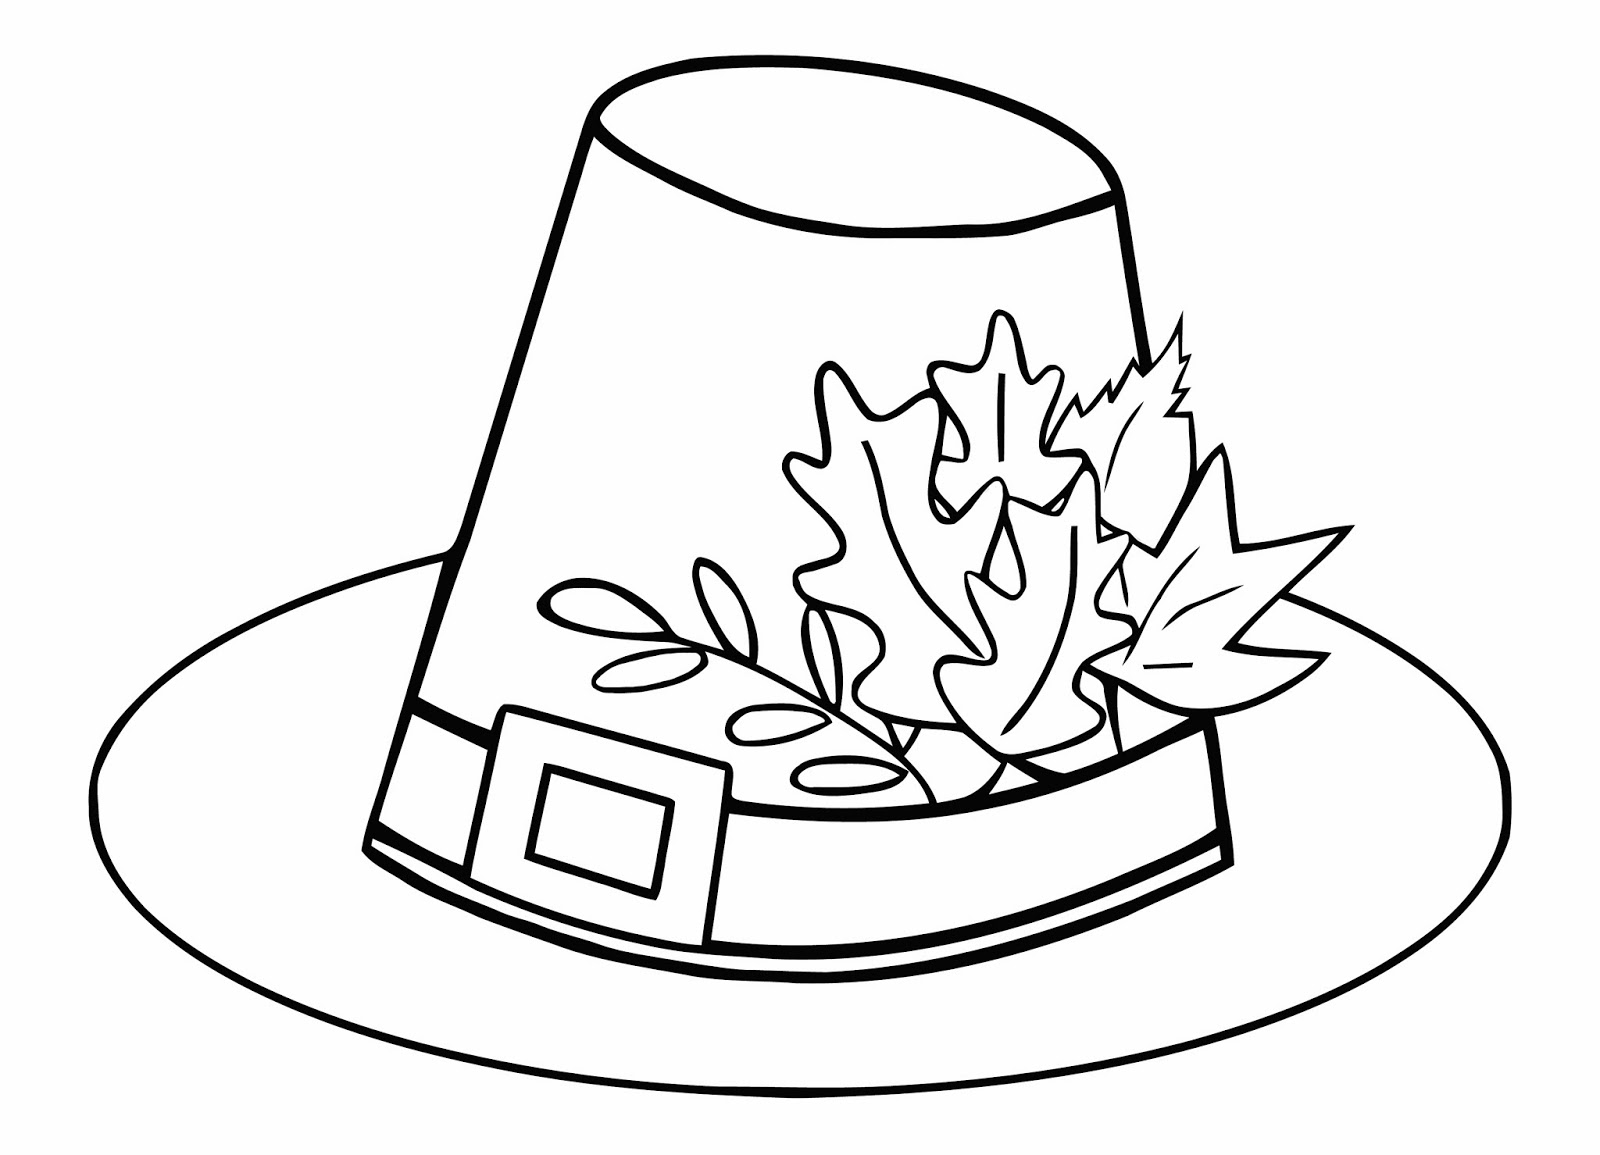 Pilgrim Coloring Pages At Getdrawings Com Free For Personal Use